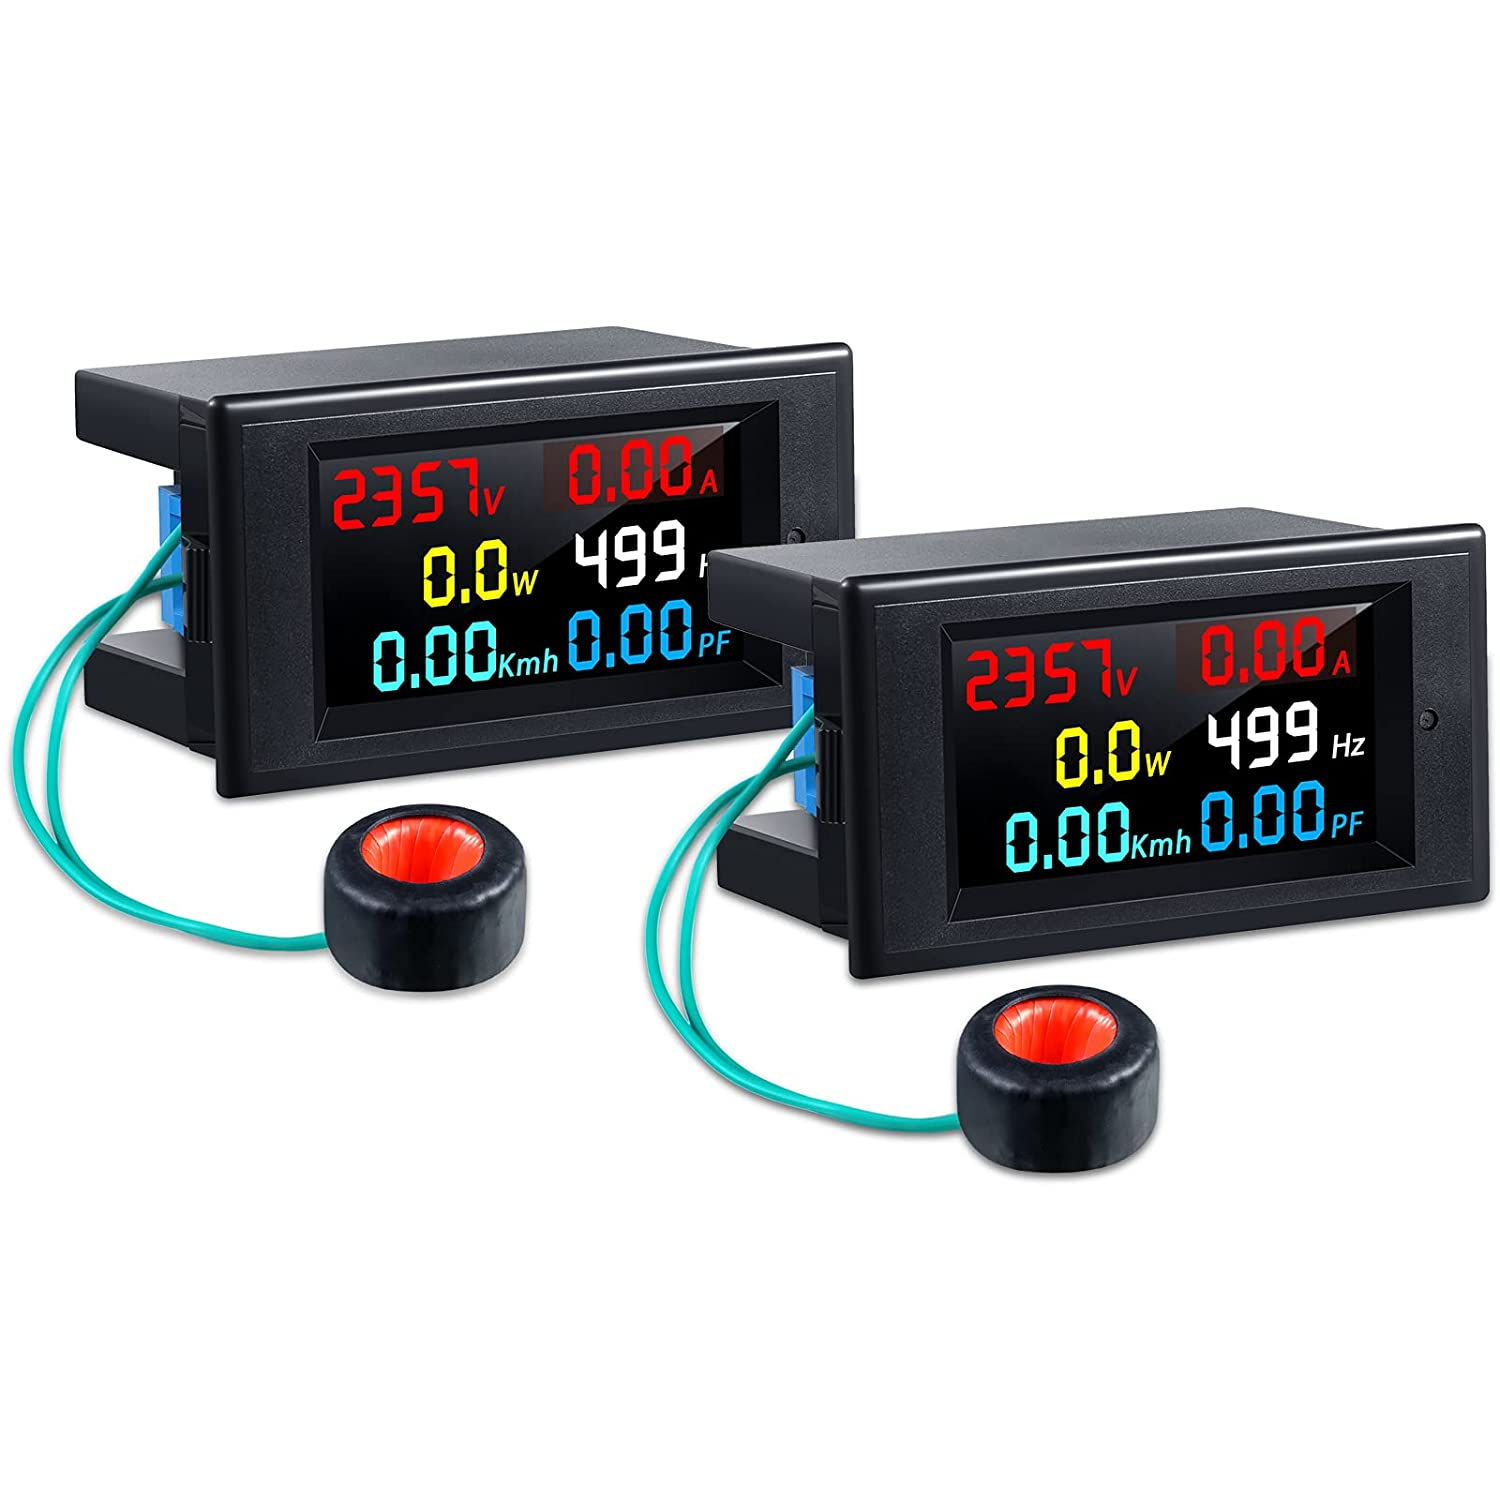 Limited Special Price 2 Pieces AC Display Meter 100A Voltm Digital Directly managed store 80-300V Multimeter